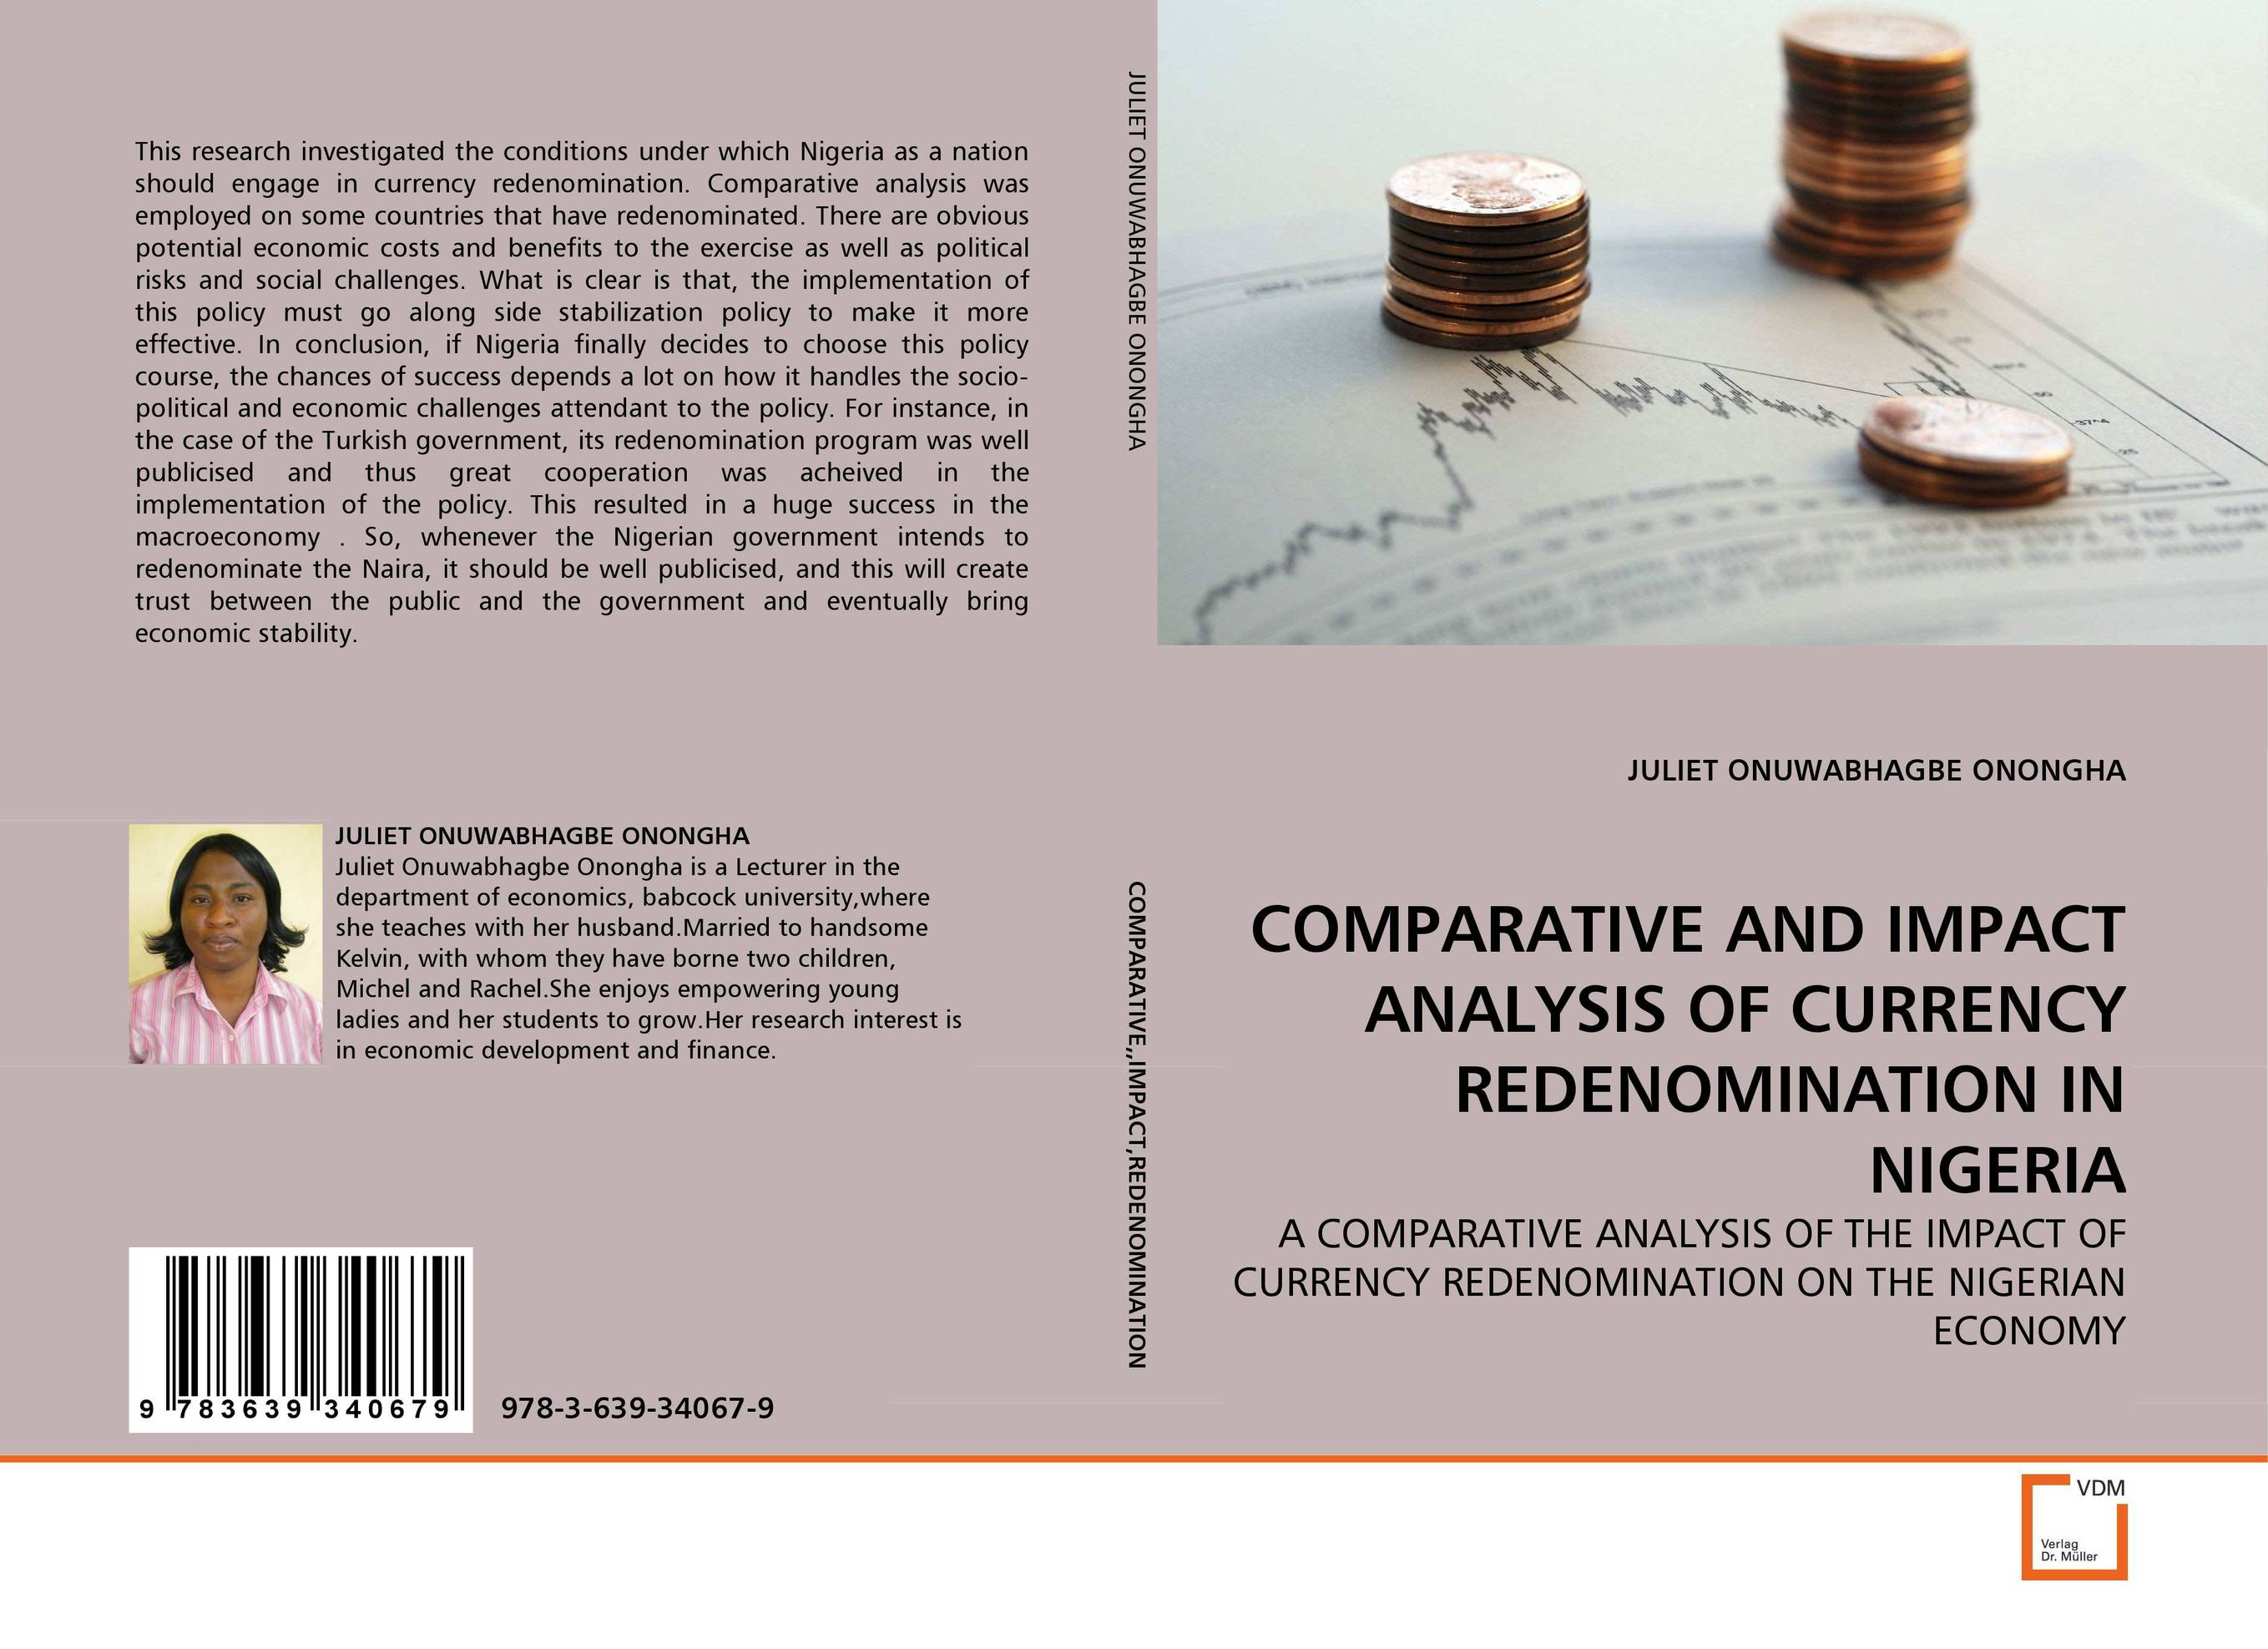 COMPARATIVE AND IMPACT ANALYSIS OF CURRENCY REDENOMINATION IN NIGERIA